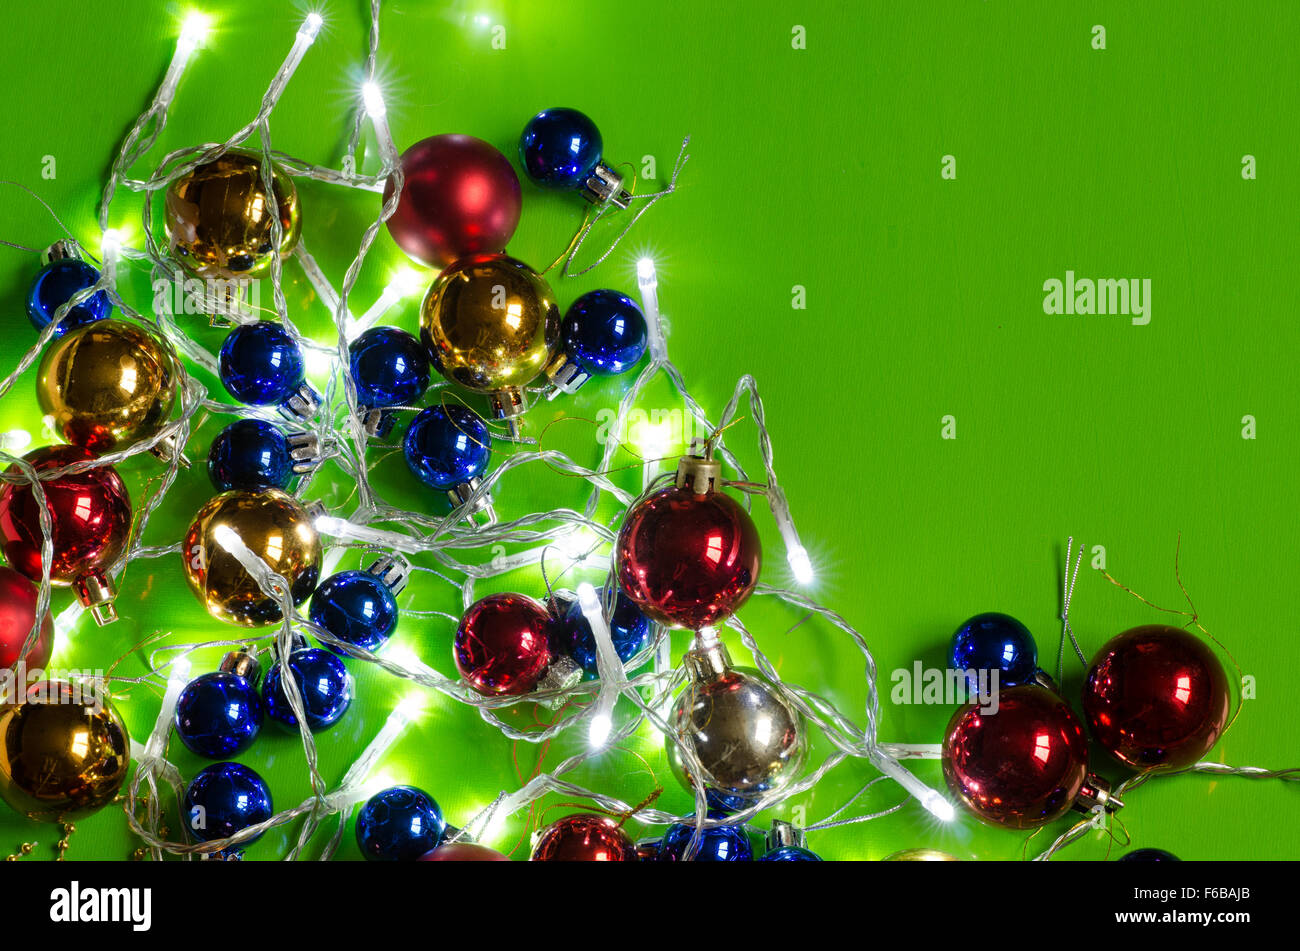 multicolored christmas lights stock photos multicolored christmas